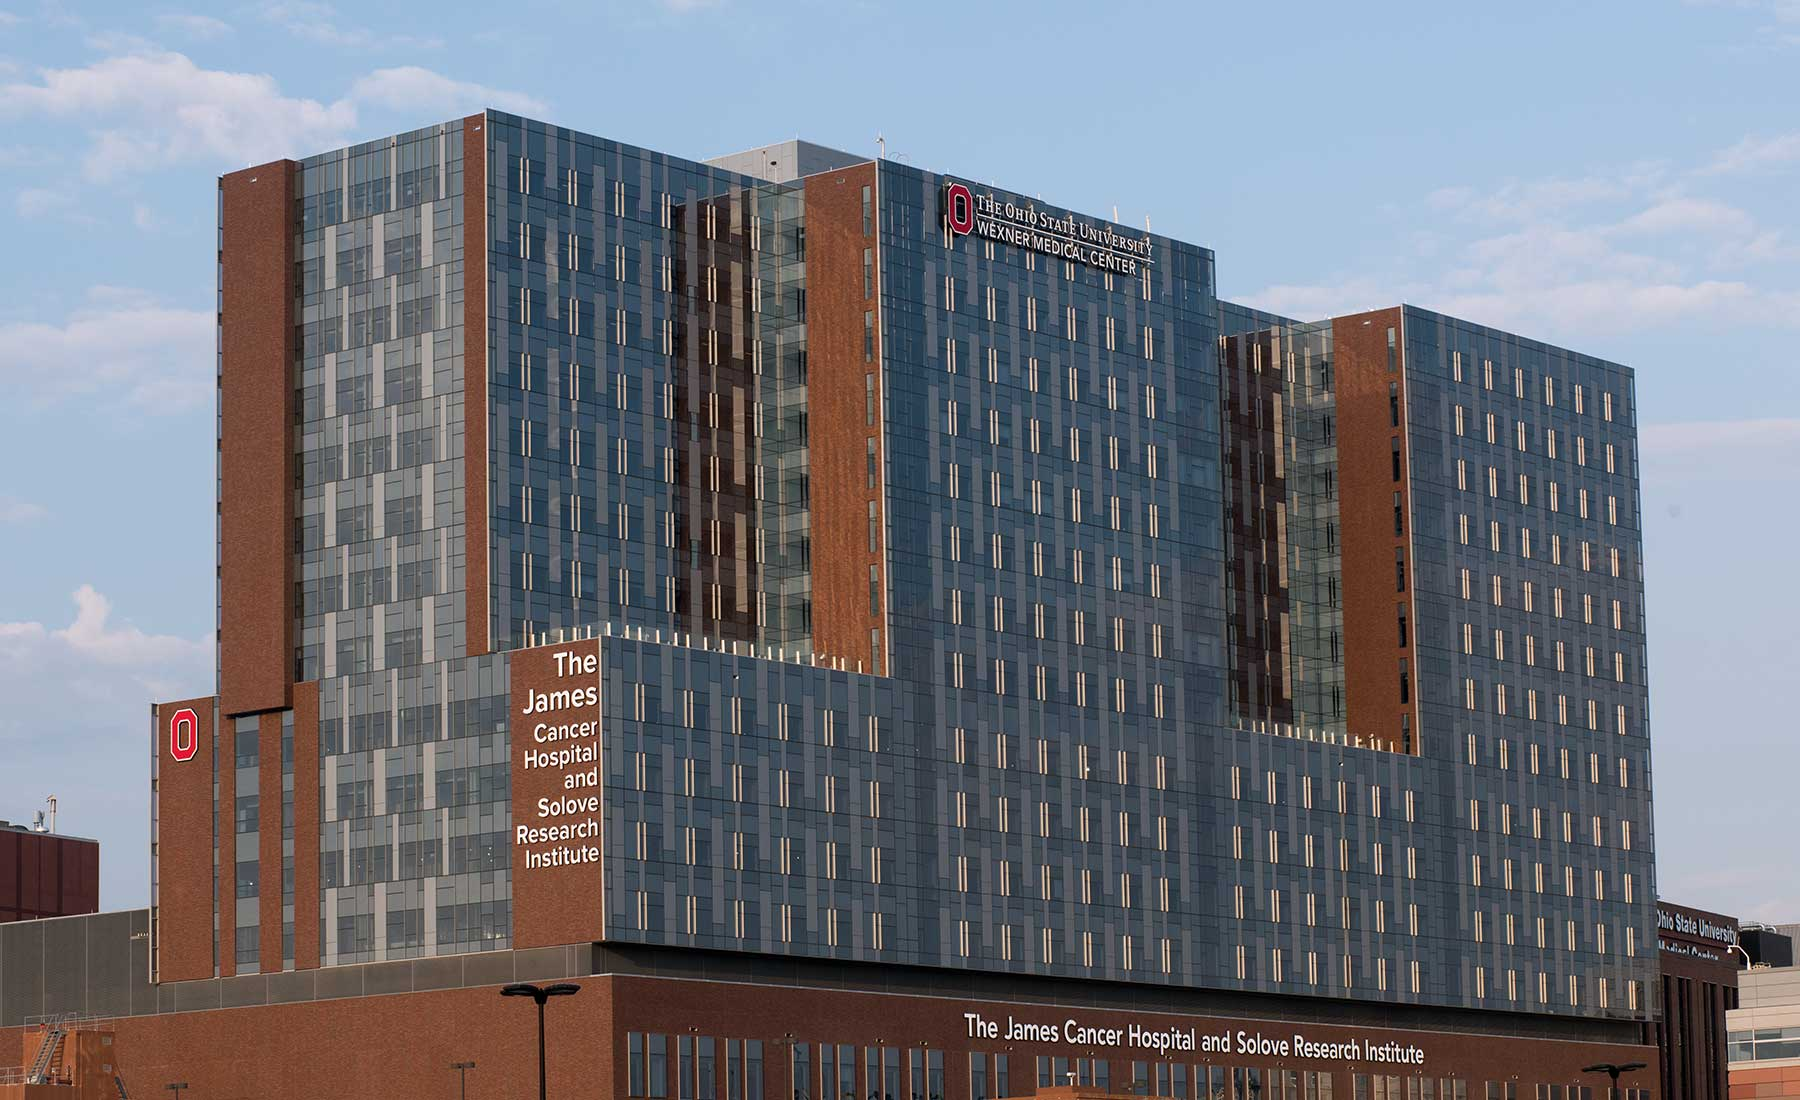 The James Cancer Hospital and Solove Research Institute